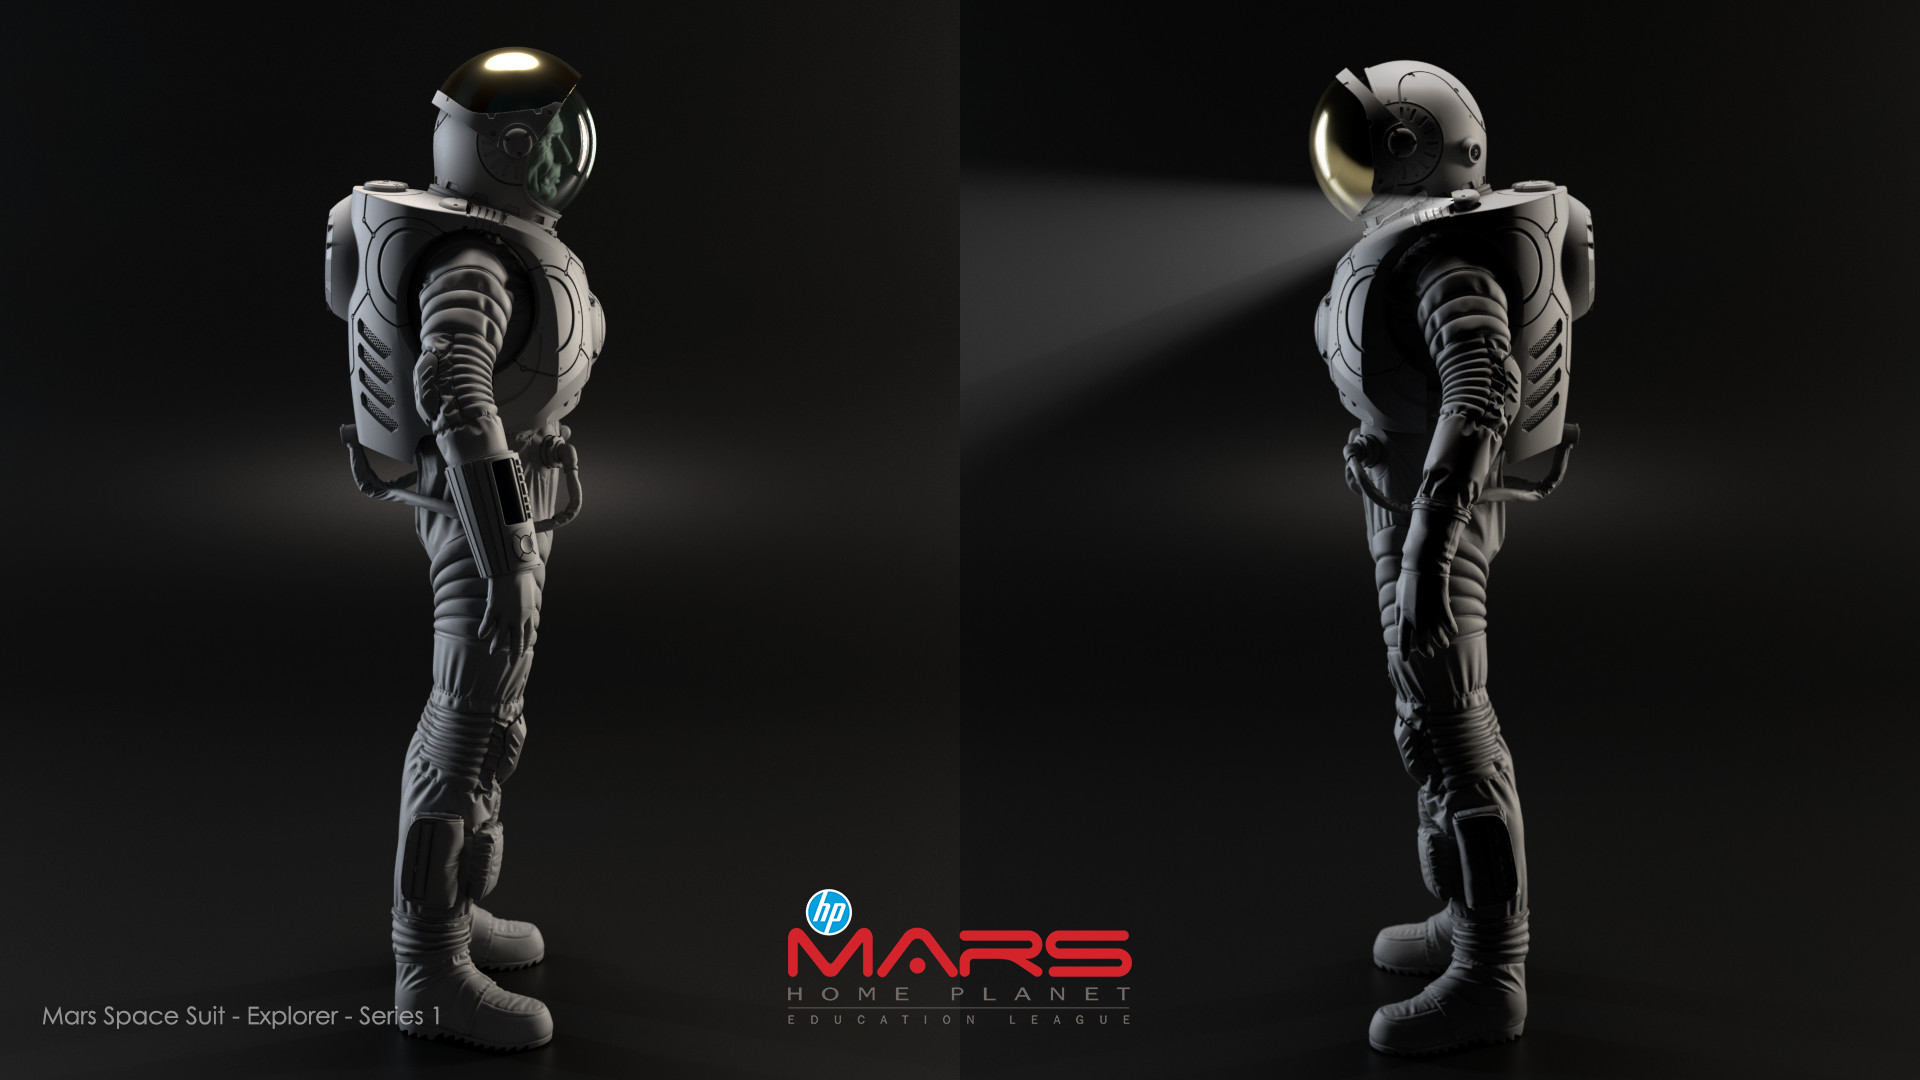 Jesus bibian jr spacesuit defaultpose 06